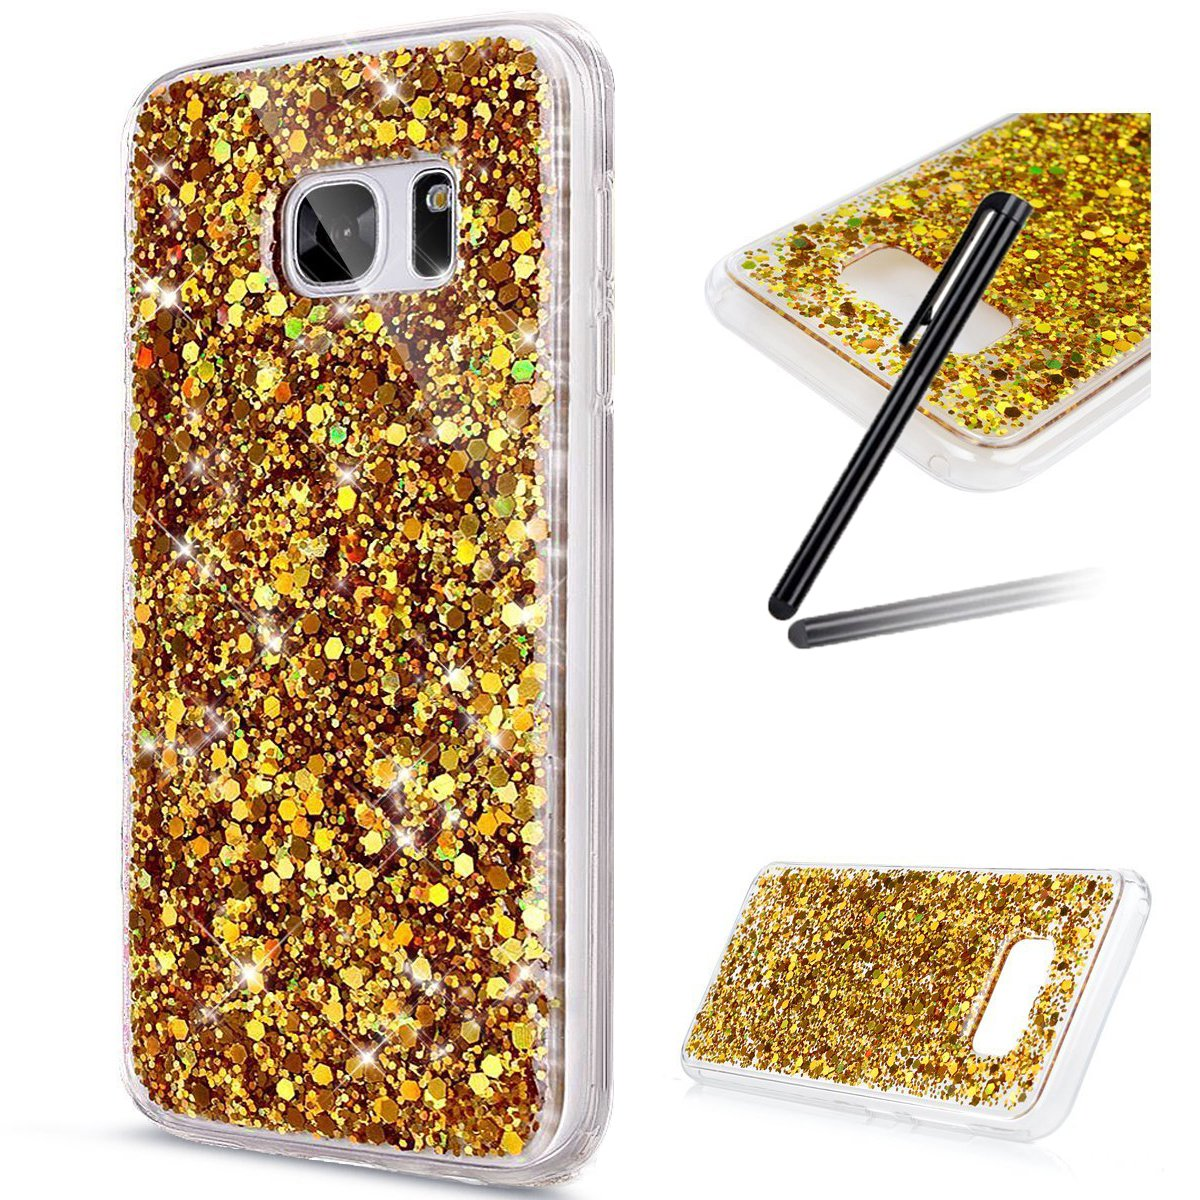 Samsung Galaxy S8 Case, Samsung Galaxy S8 Case Bling, Galaxy S8 Cover, SKYMARS Sparkly Shiny Glitter Bling Powder 3D Diamond Paillette Slim Glitter Flexible Soft Rubber Gel TPU Protective Shell Bumper Case Cover for Samsung Galaxy S8, Bling Gold